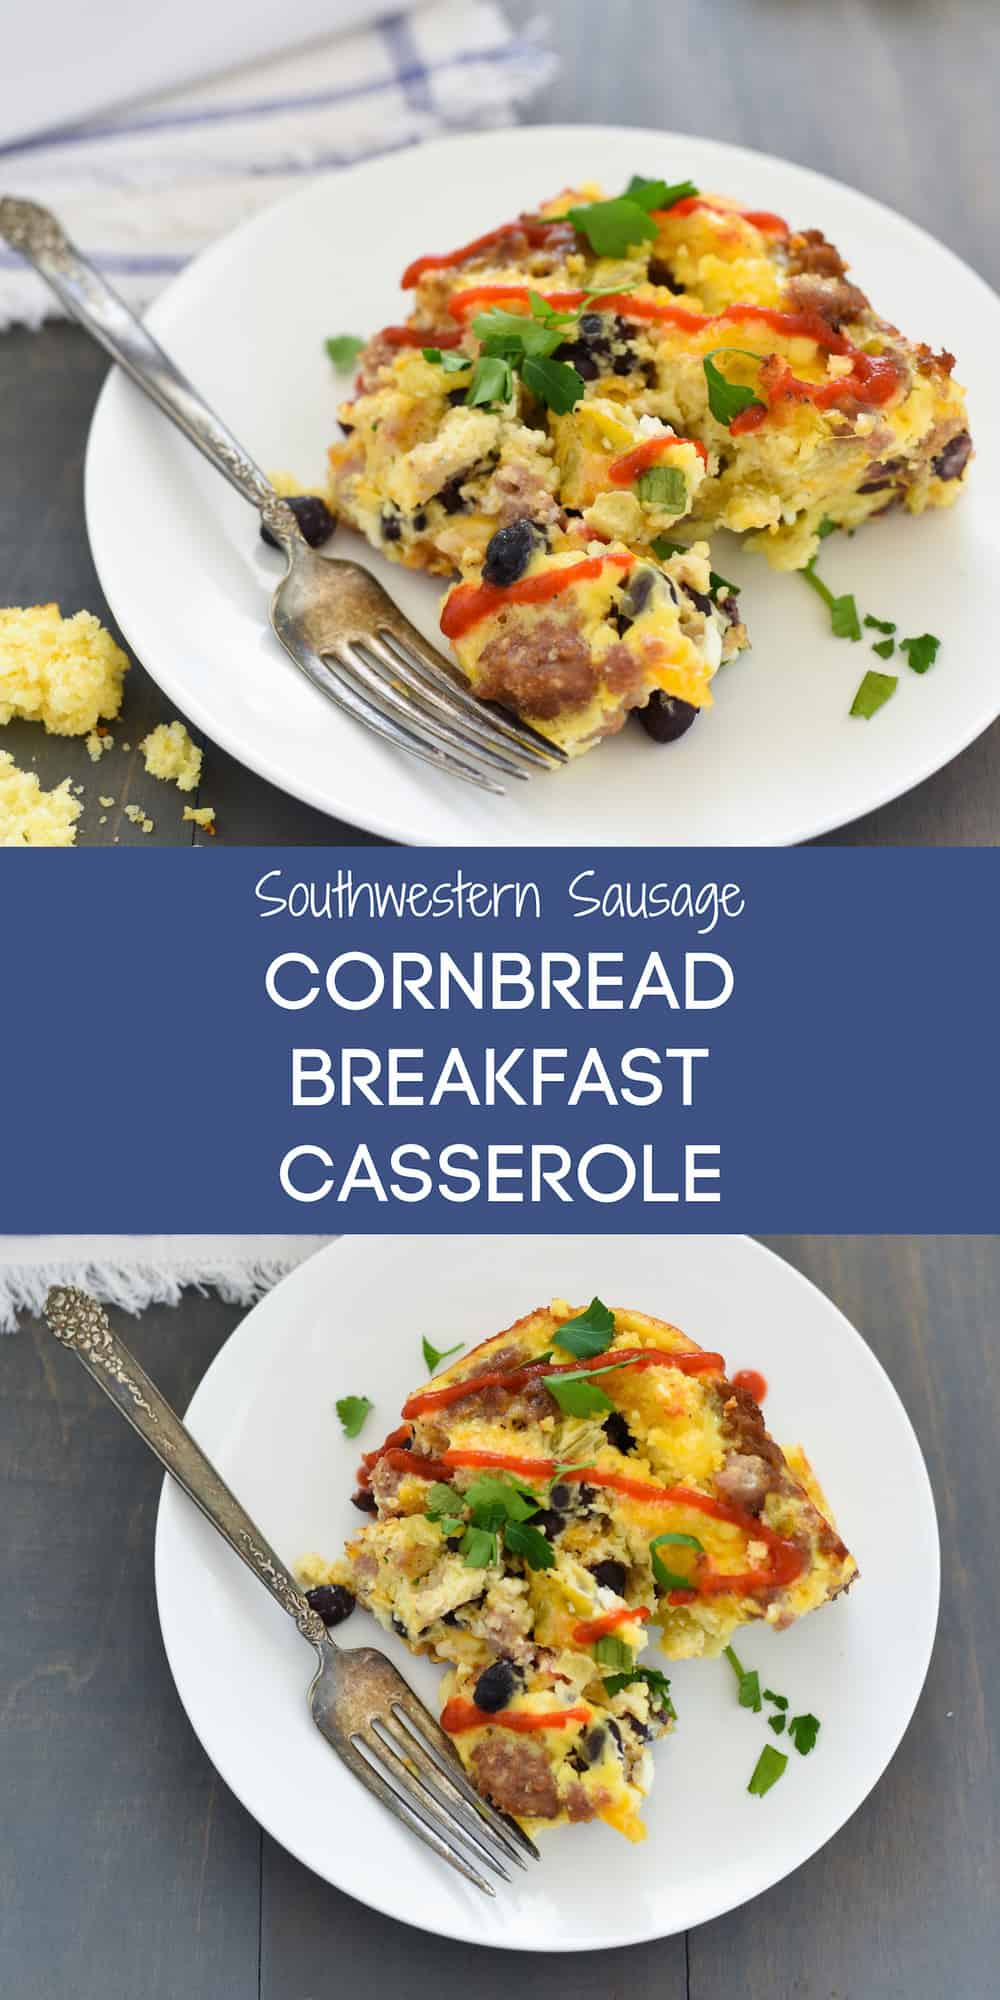 Collage of images of breakfast casserole with overlay: Southwestern Sausage CORNBREAD BREAKFAST CASSEROLE